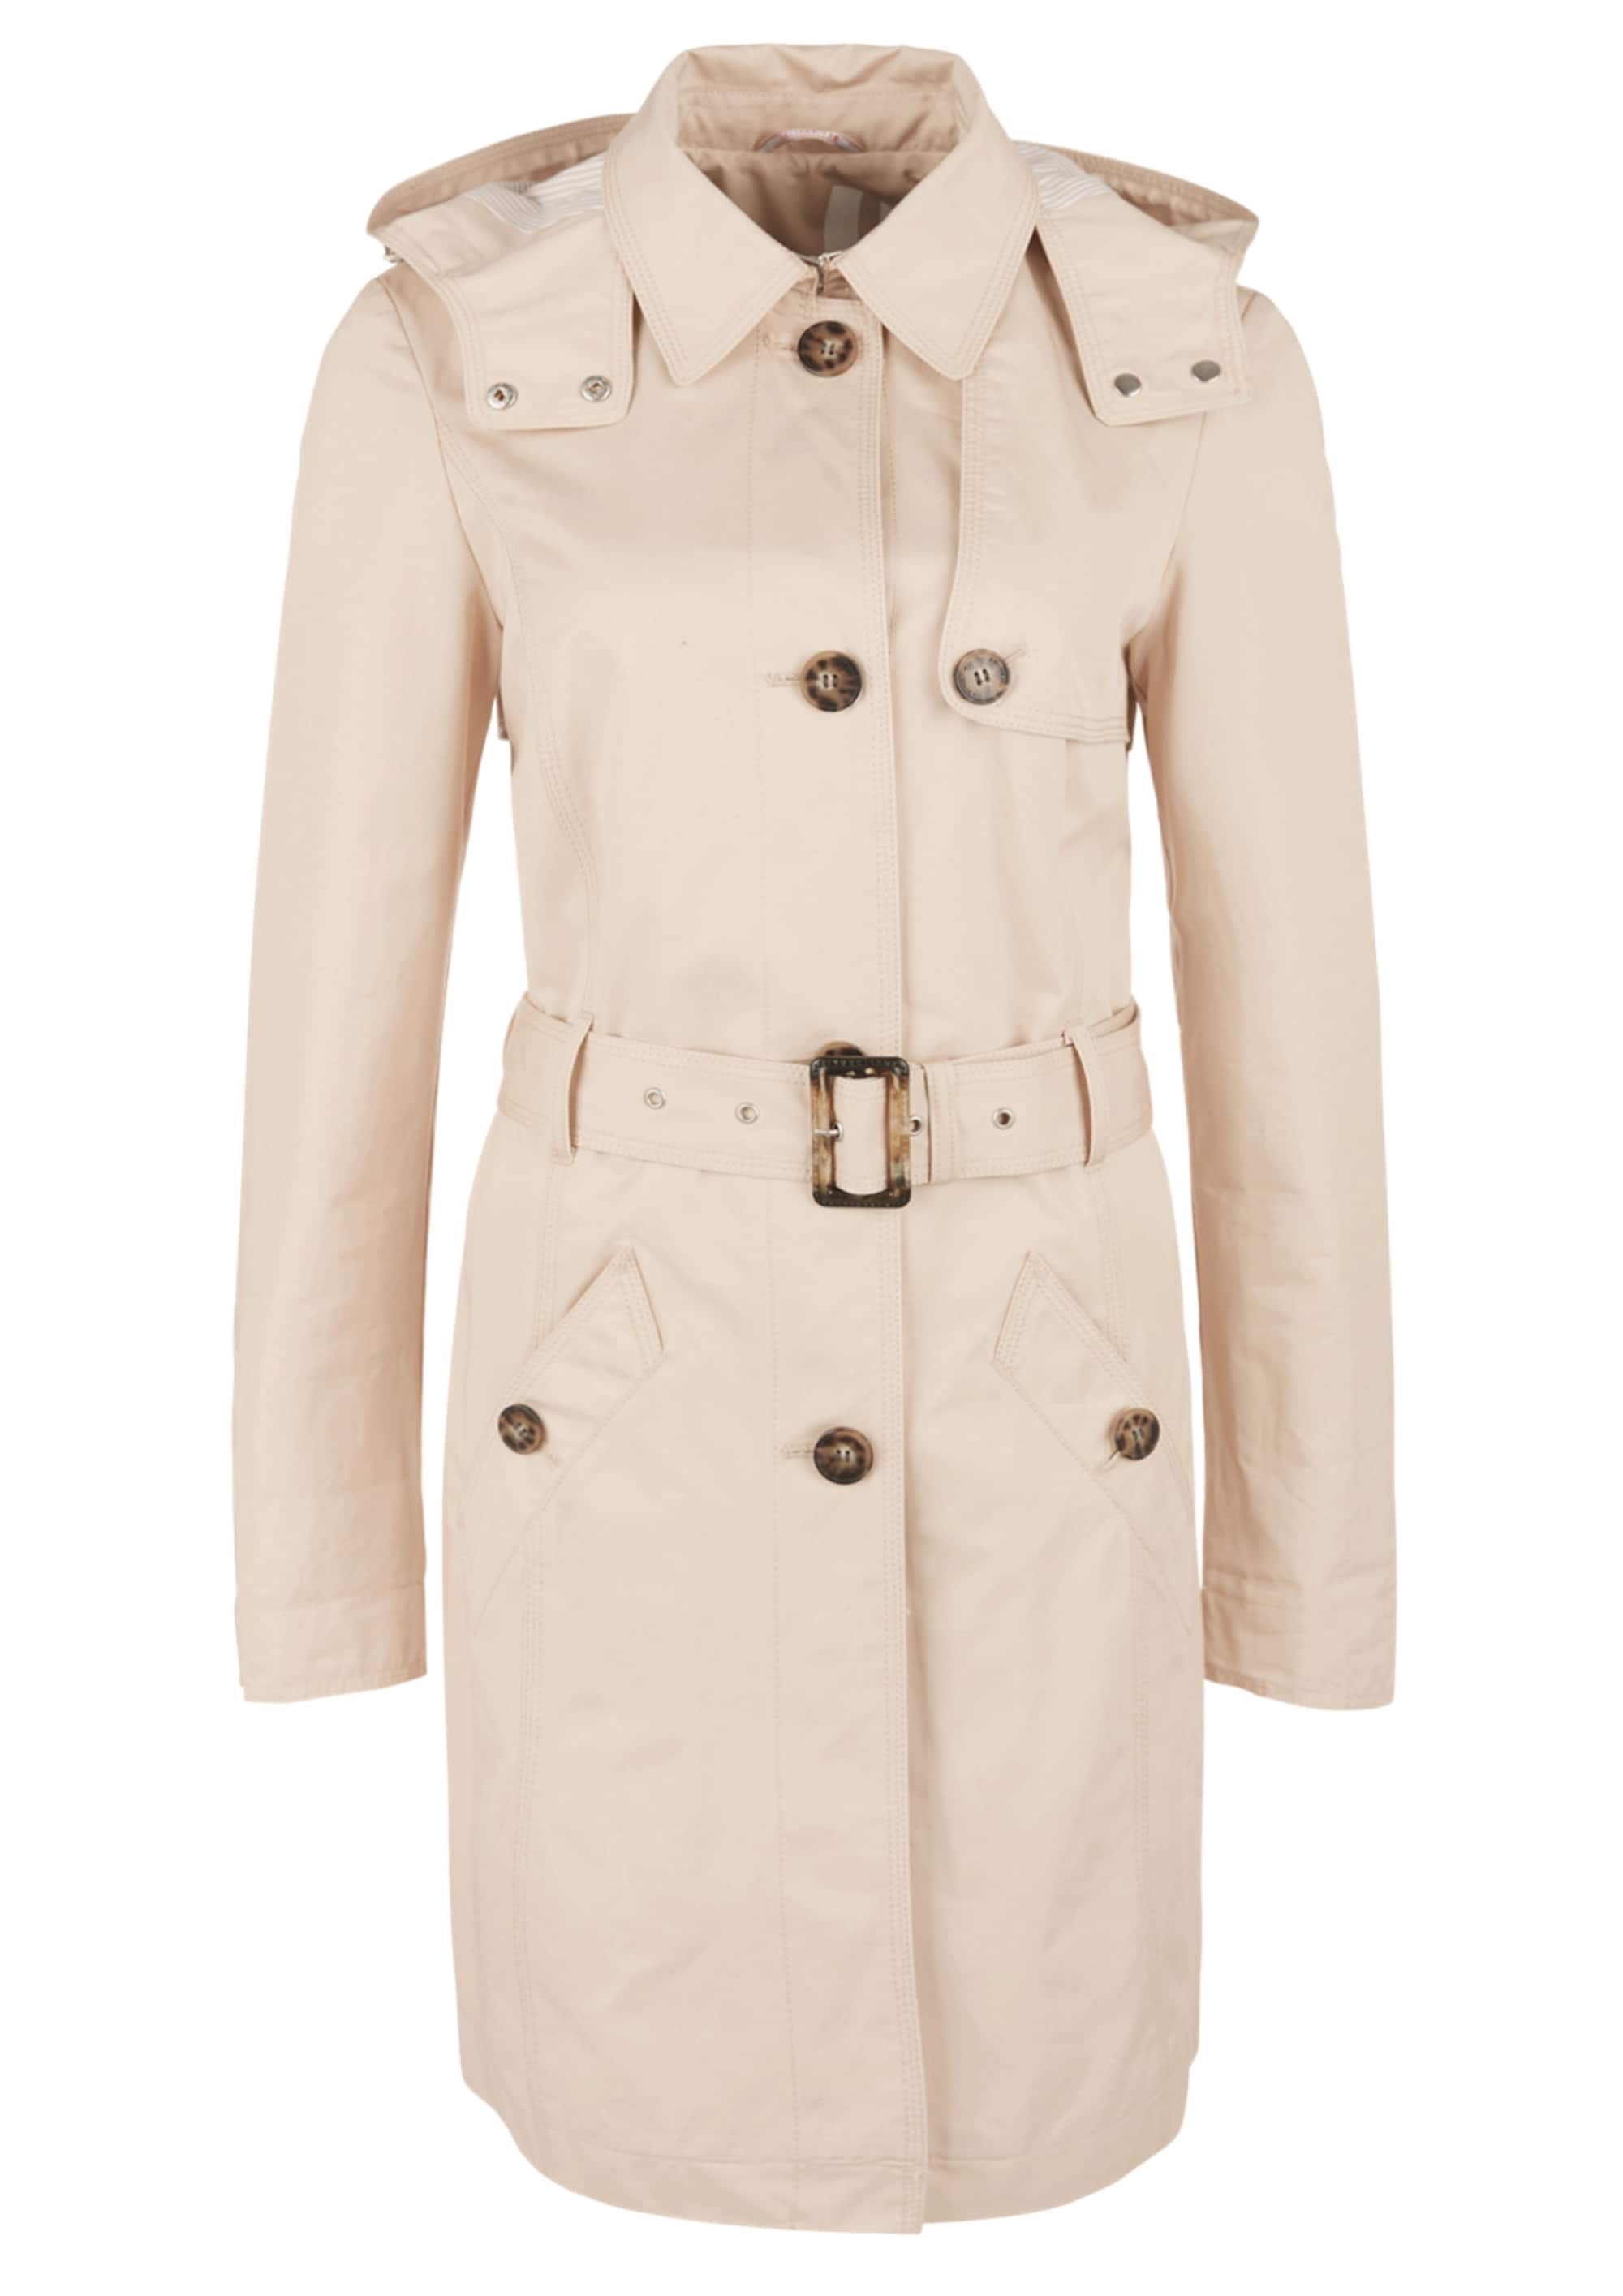 s.oliver red label - Trenchcoat mit Collar